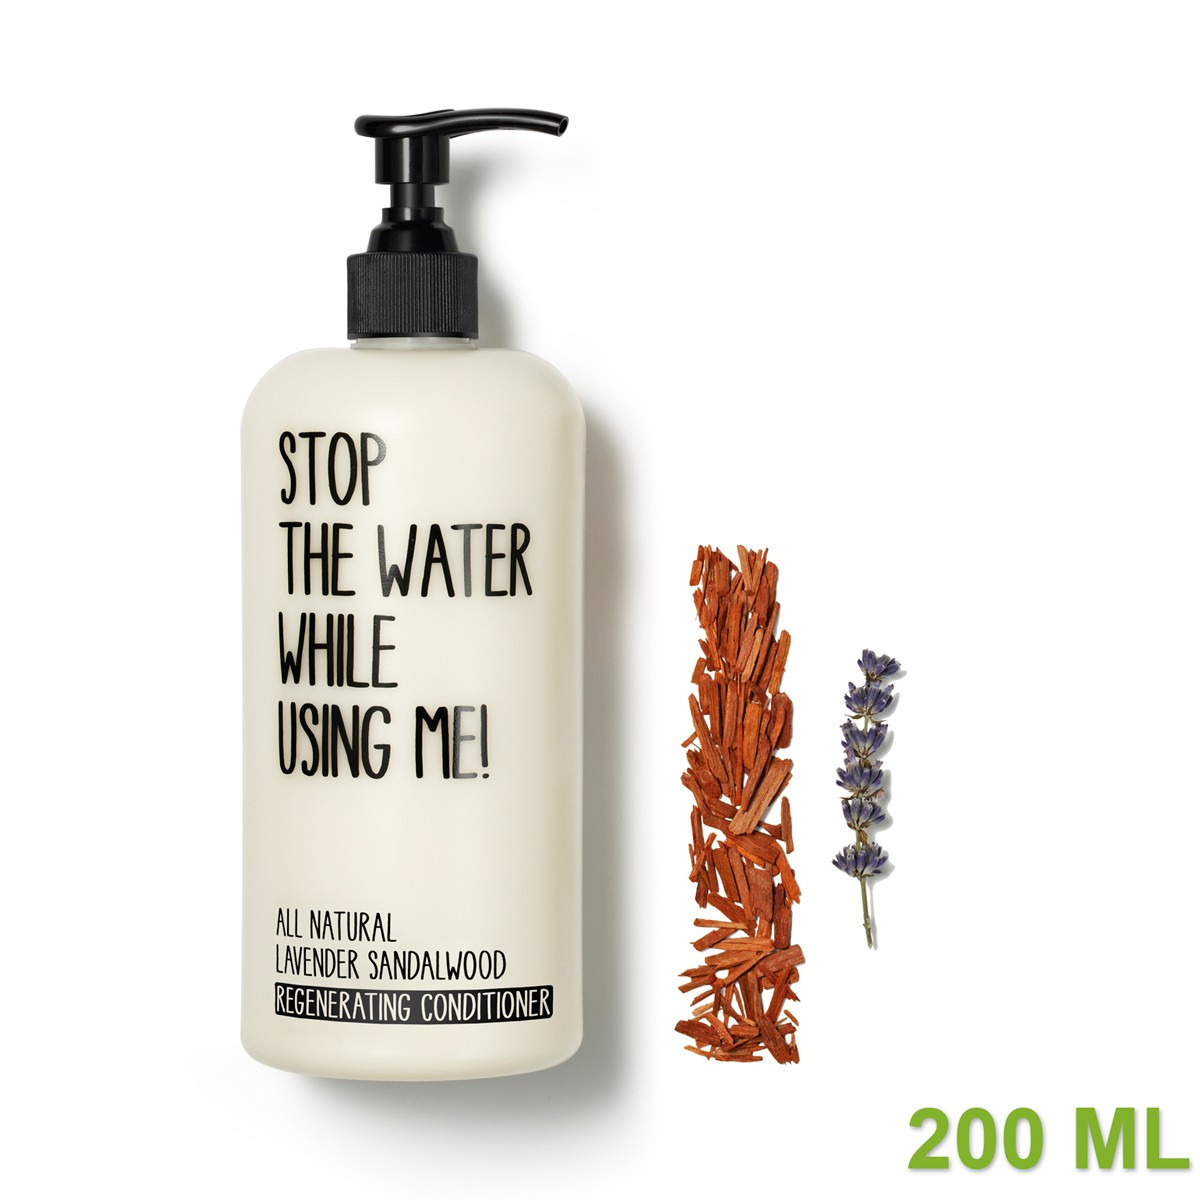 All Natural Lavender Sandalwood Regenerating Conditioner 200ml von STOP THE WATER WHILE USING ME!